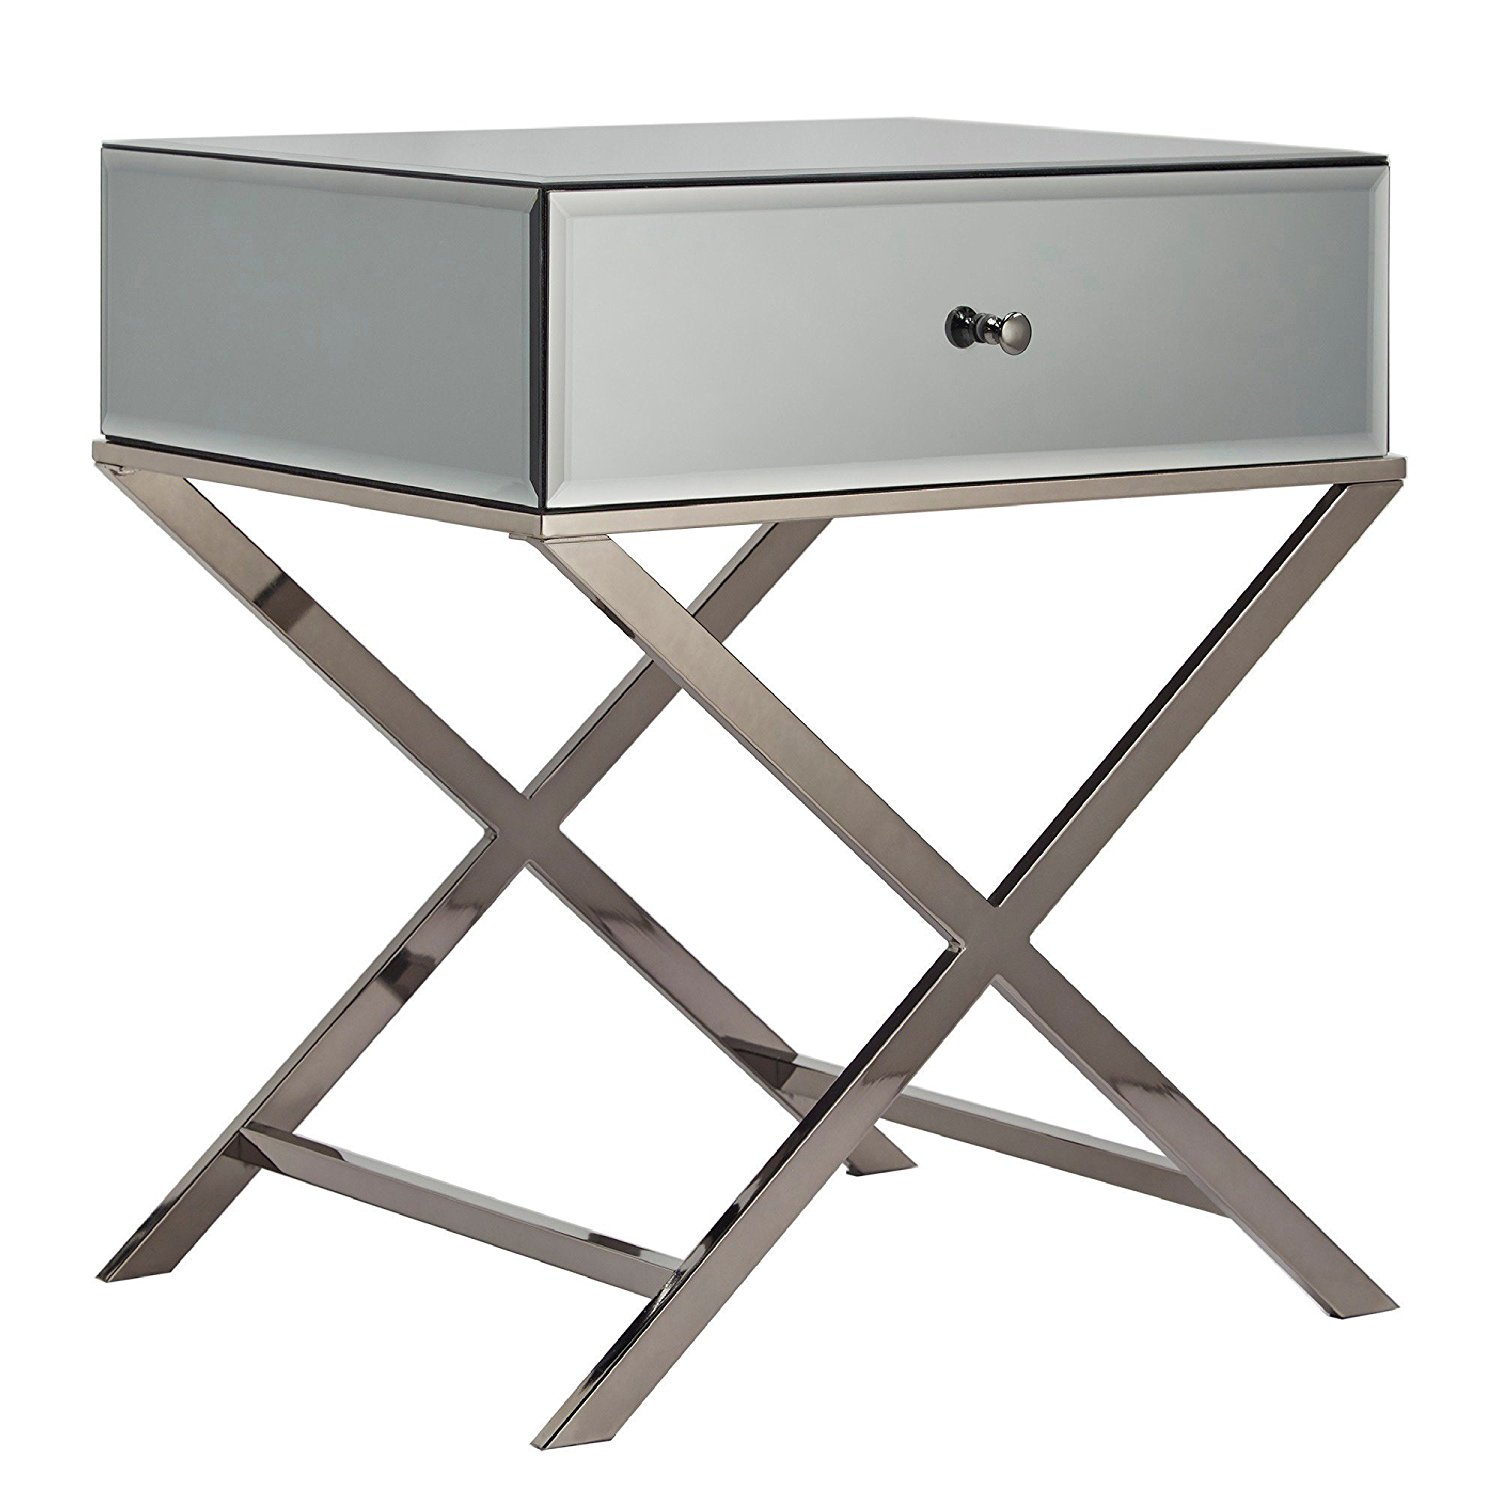 modern camille base metal framed mirrored accent campaign table camillenickel circular nesting tables vintage telephone small oak gray and white chairs youth drum throne ikea